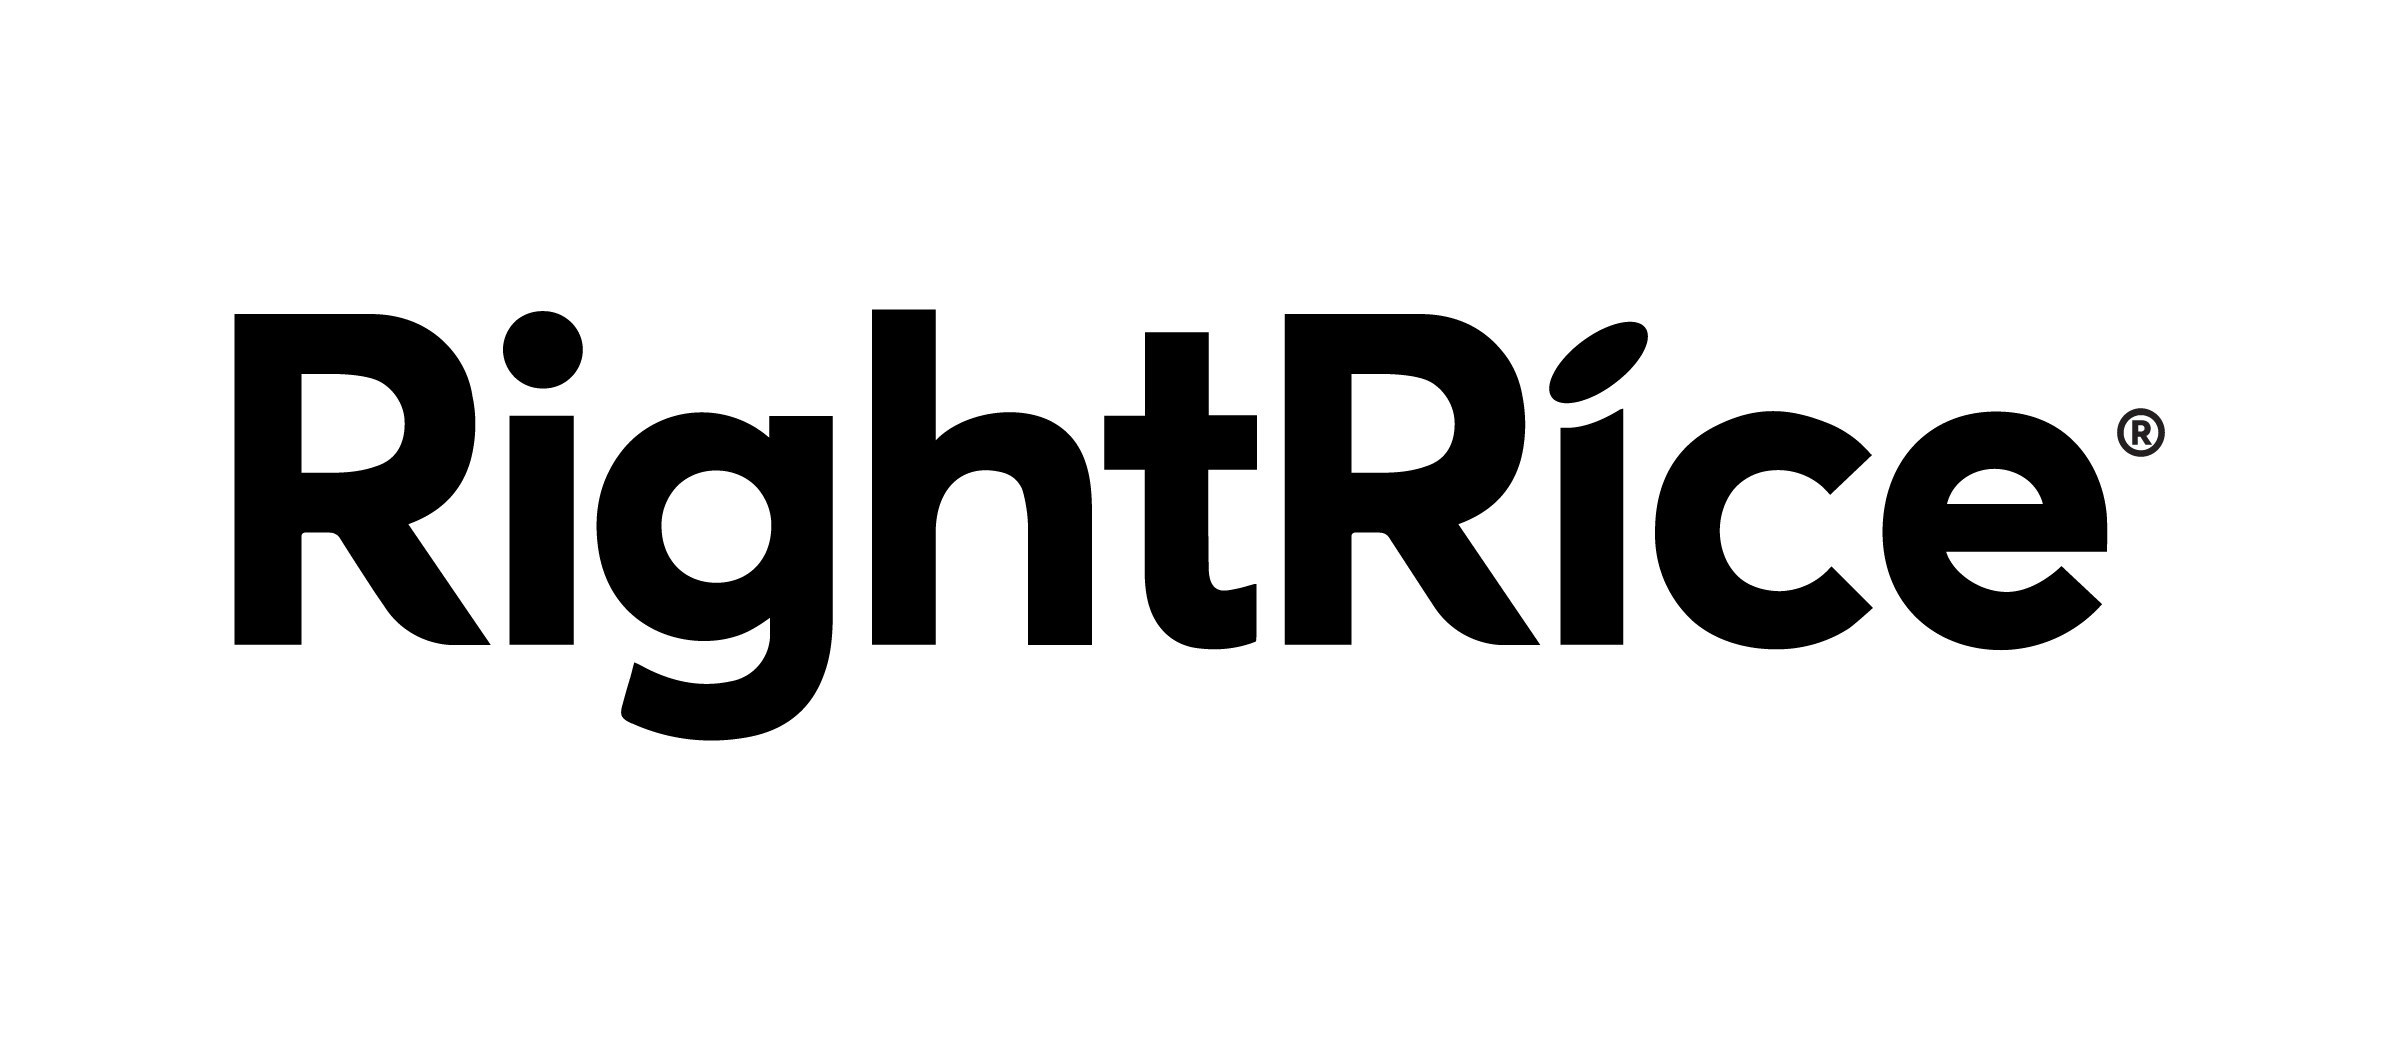 RightRice® Introduces Innovative Vegetable Rice Grain With